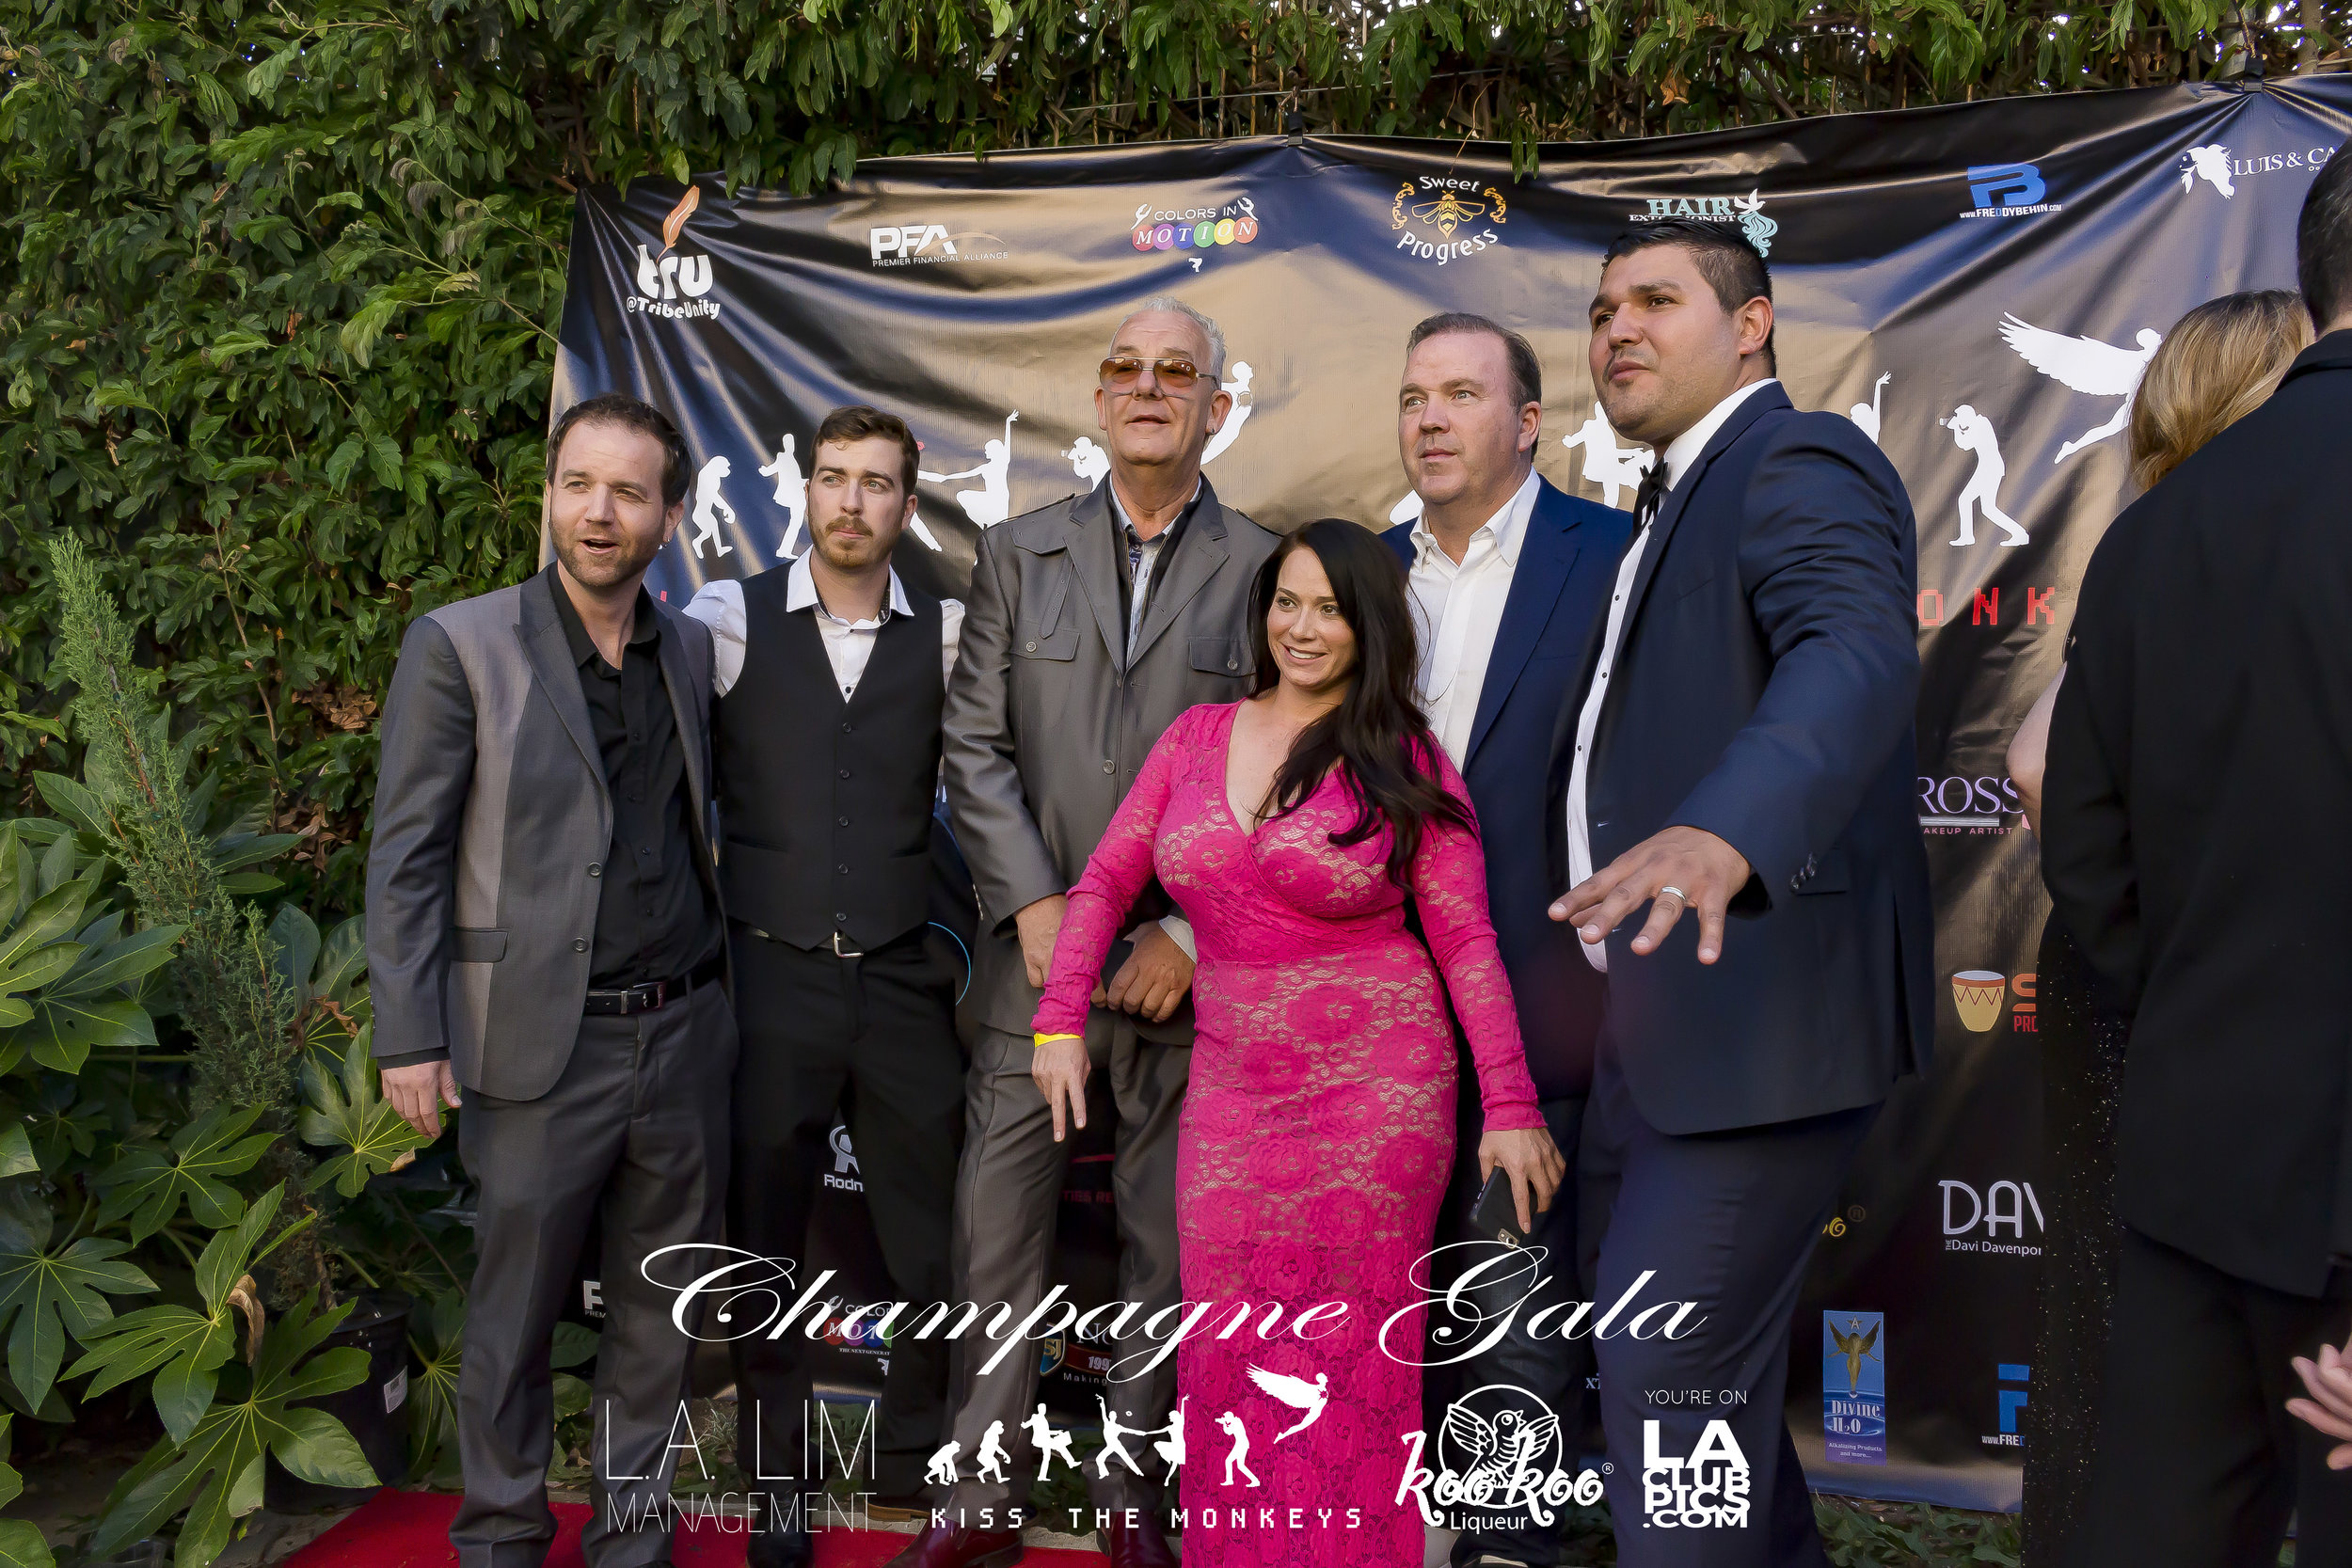 Kiss The Monkeys - Champagne Gala - 07-21-18_107.jpg